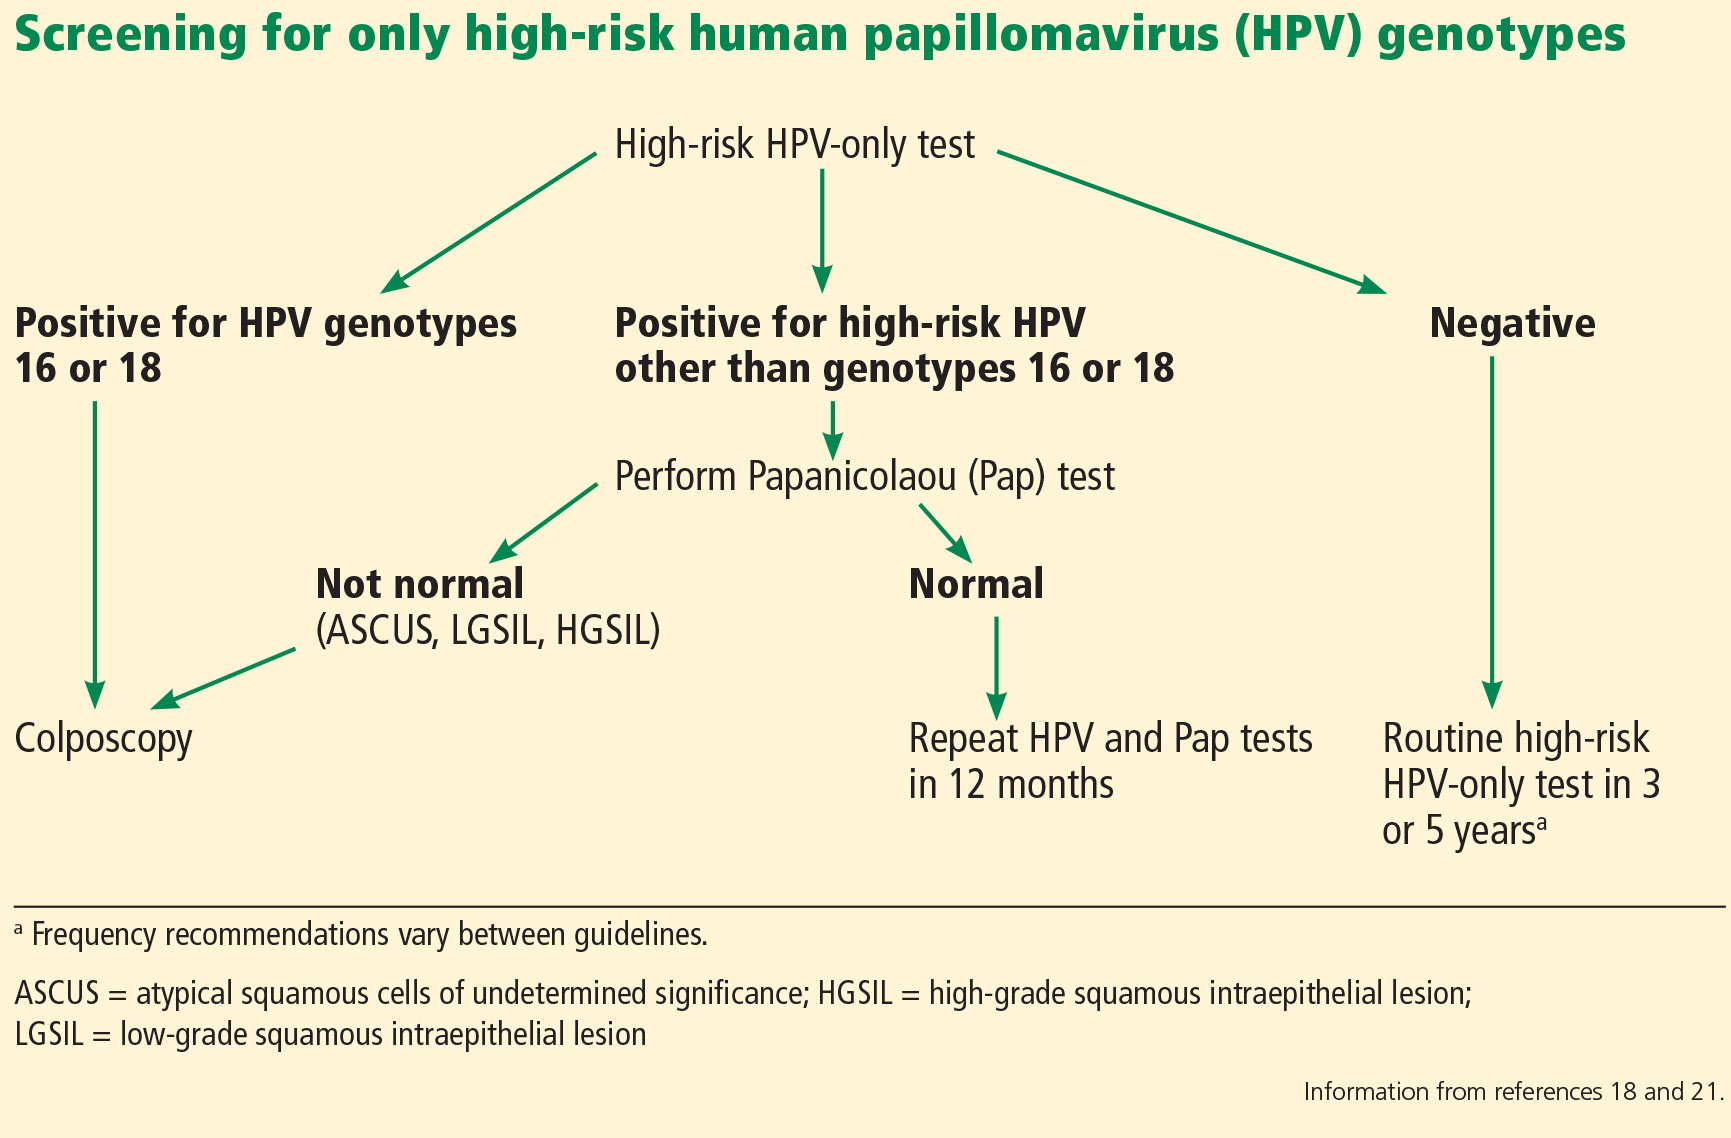 Hpv high risk non/18, HPV și cancerul de col uterin